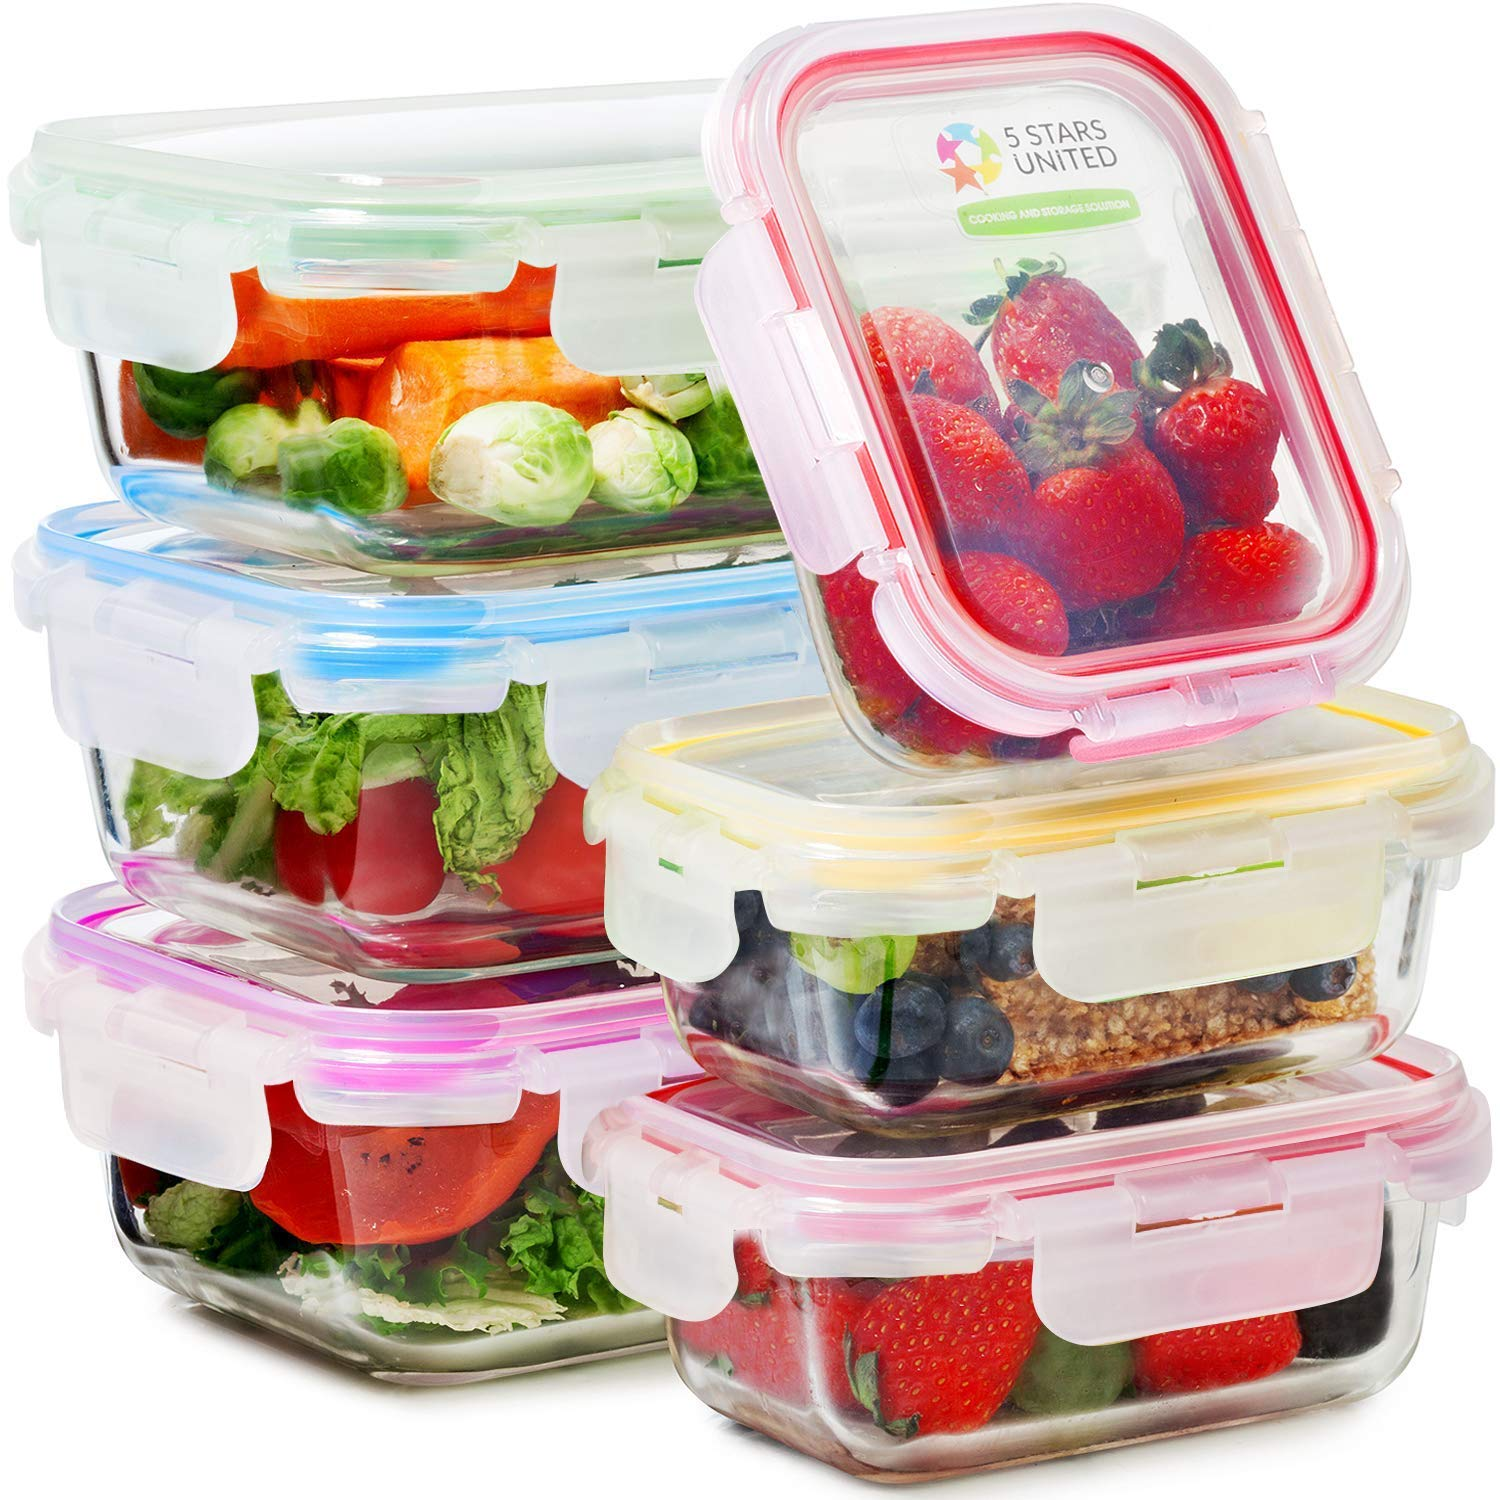 Glass Food Storage Containers with Lids - 6 Pack, 2 Sizes (35 Oz, 12 Oz) - Meal Prep Lunch Boxes - Microwave, Fridge, Freezer, Dishwasher, Oven Safe - BPA-free - Easy Snap, Airtight and LeakProof Lids by 5 STARS UNITED (Image #1)